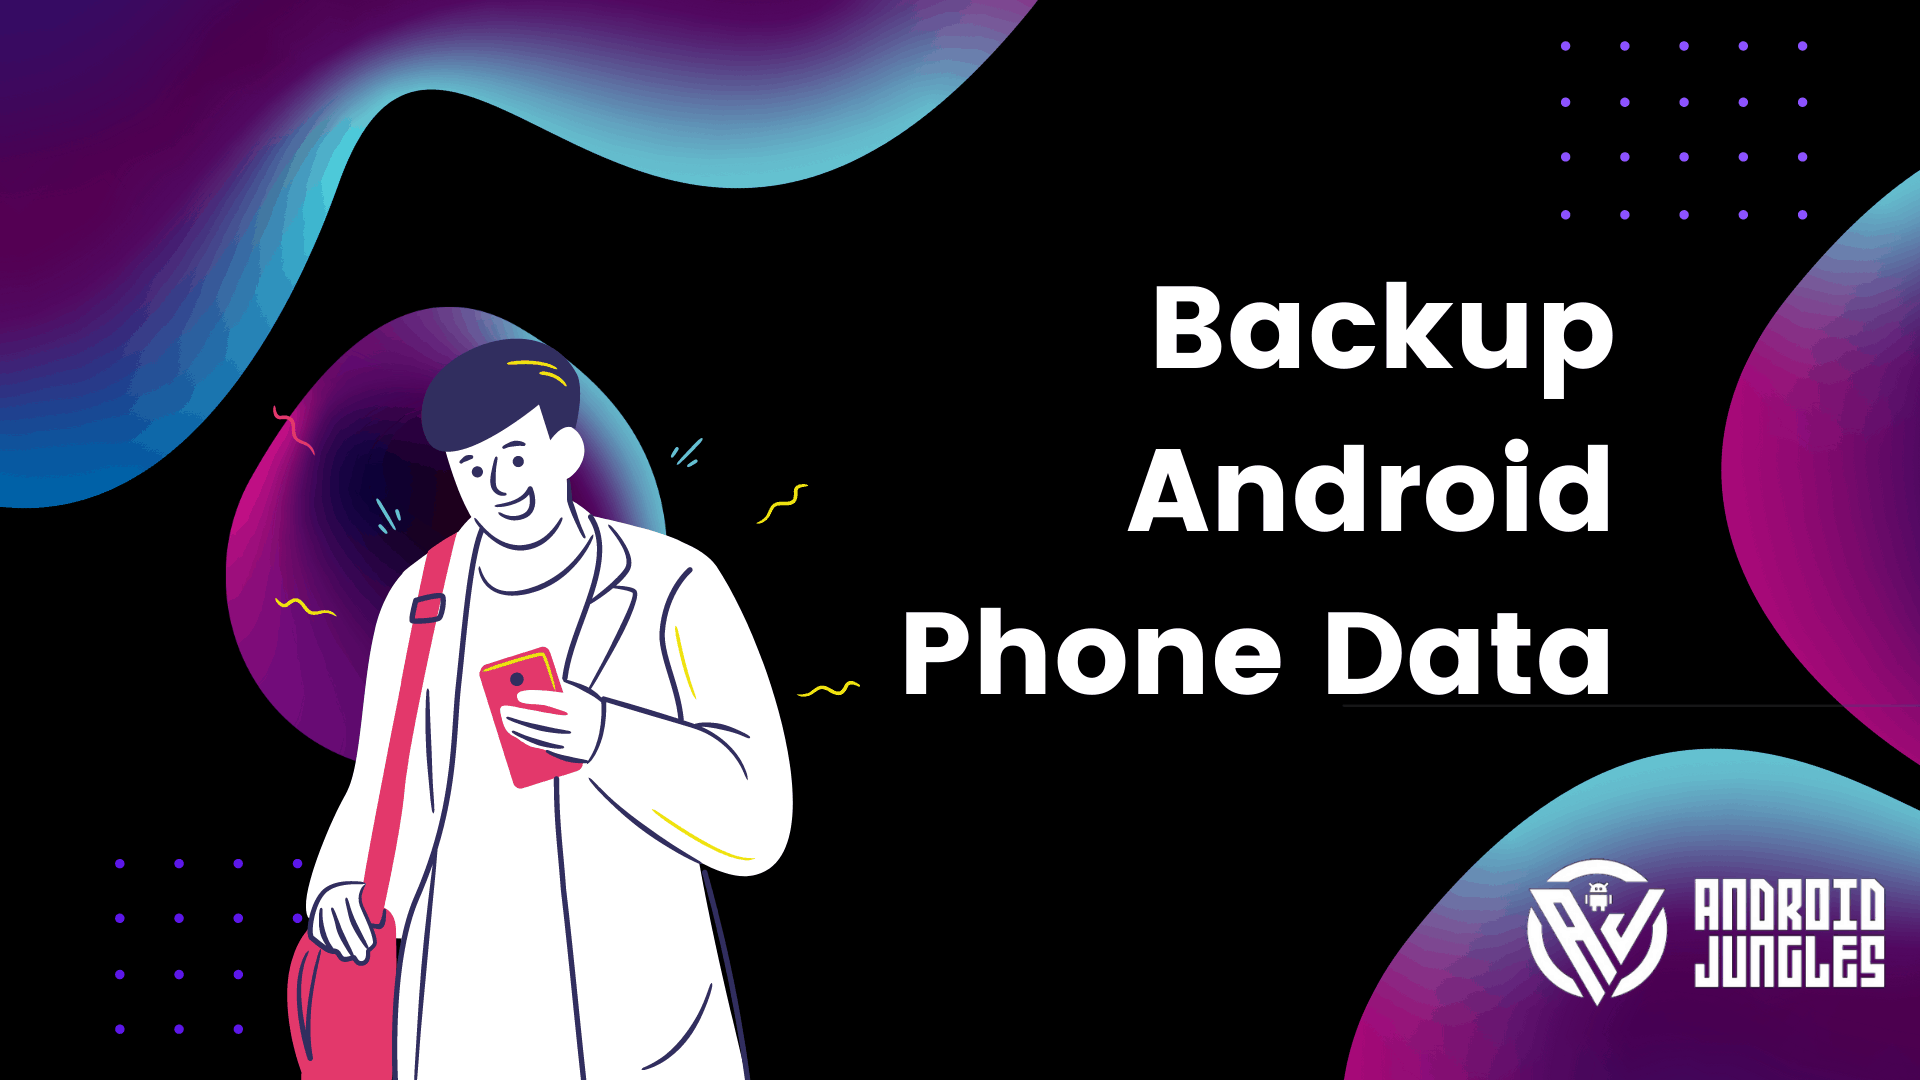 How to Backup Android Phone Data